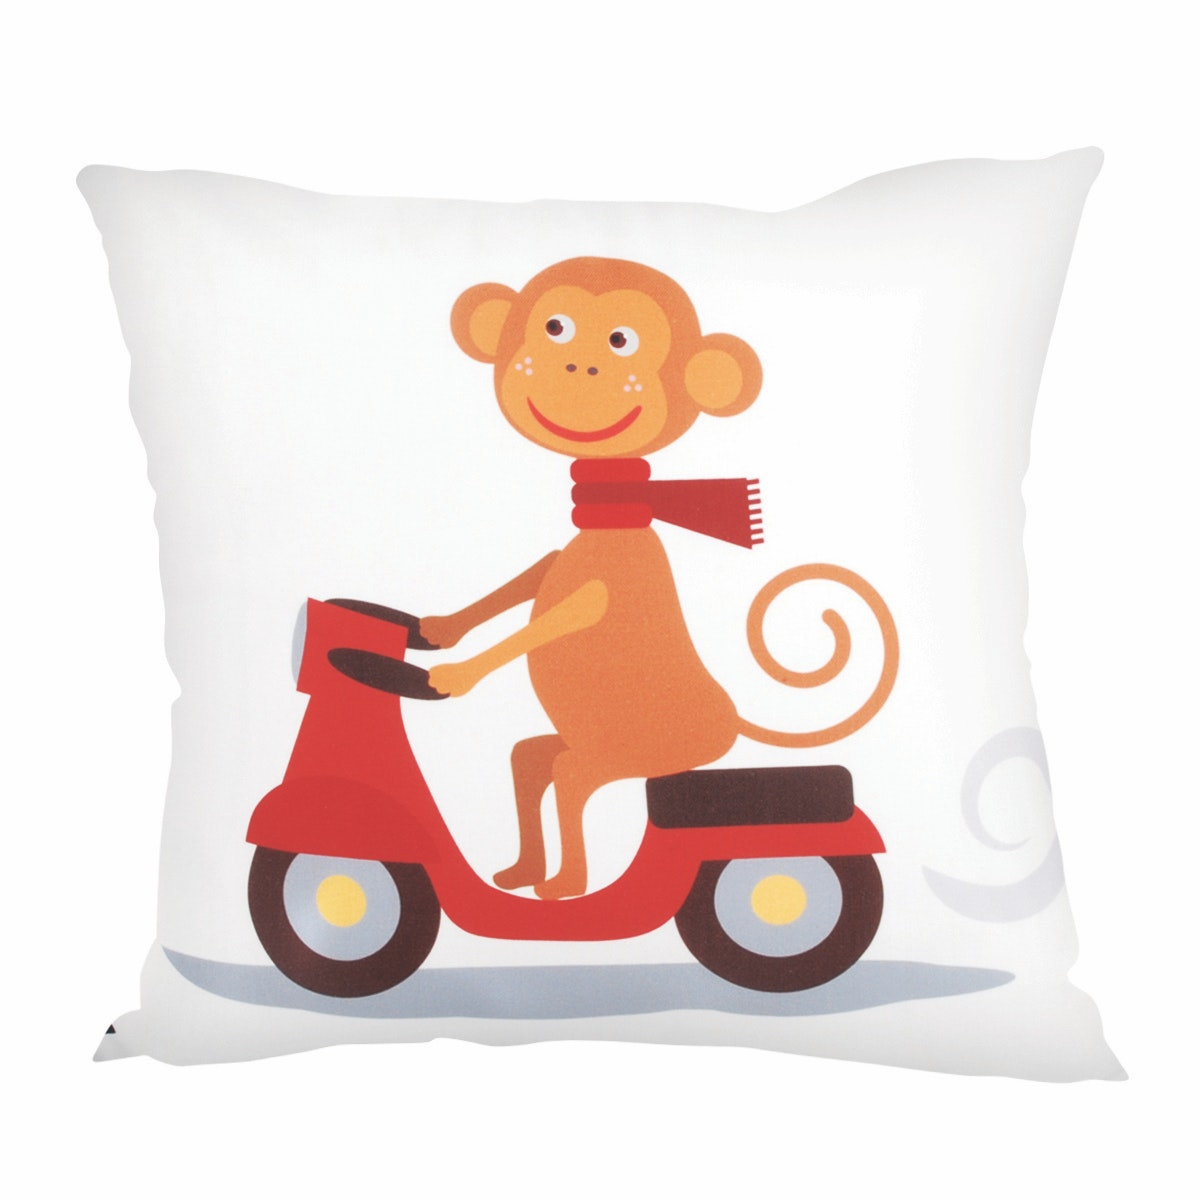 Glerry Home Decor Scooter Monkey Cushion 40x40cm